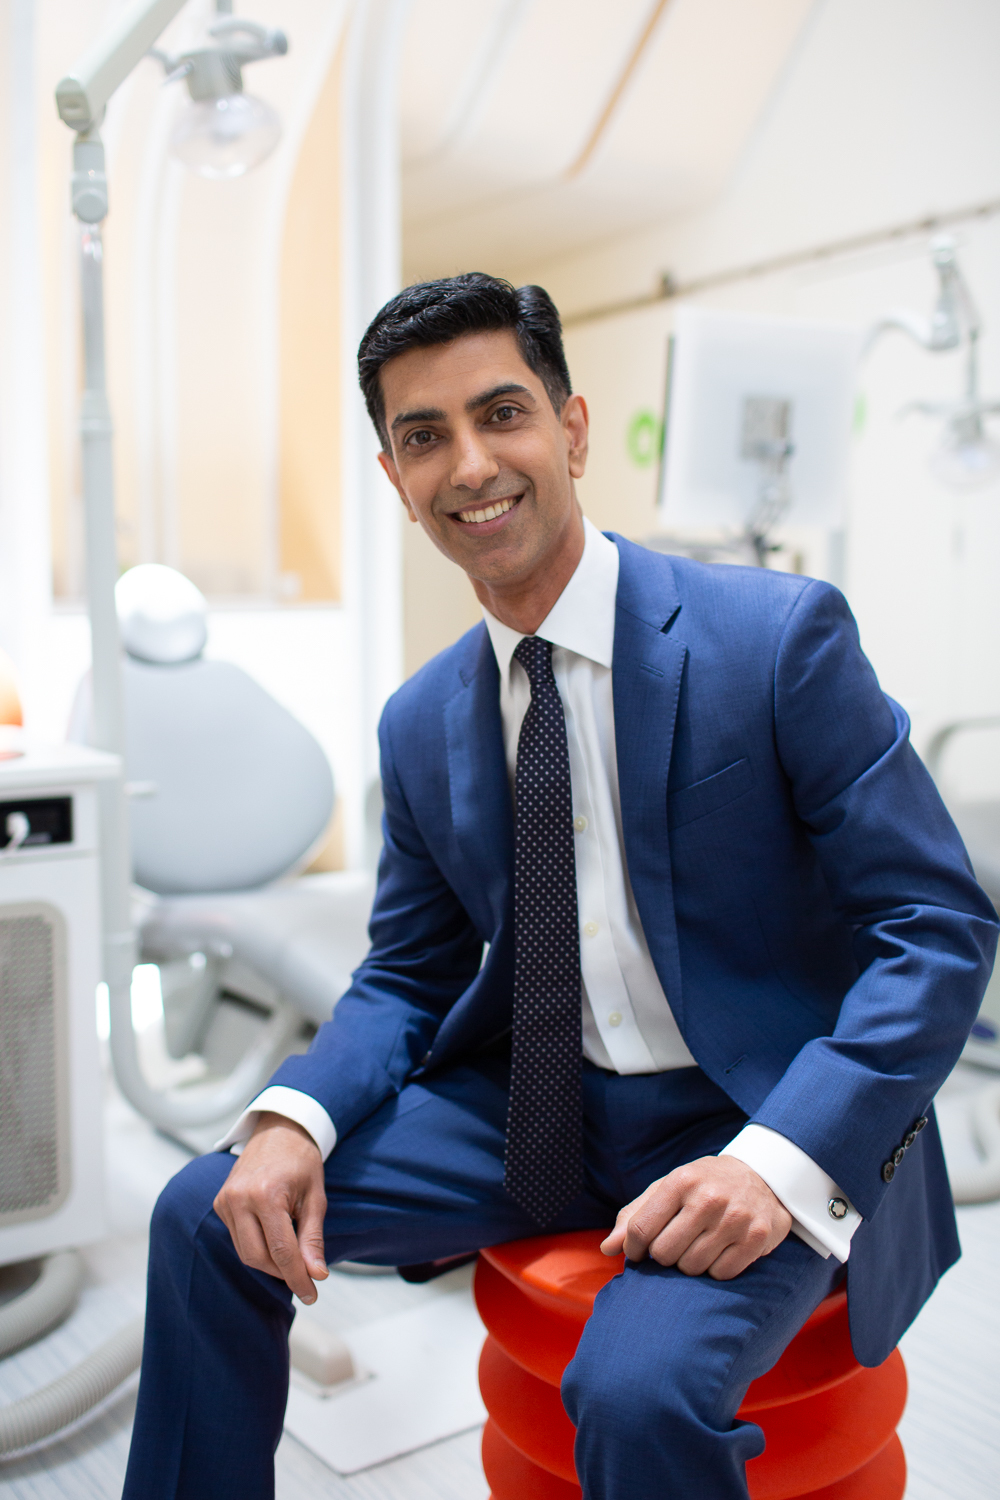 Dr Lokesh Suri, Best Orthodontist Hospital in Greater Boston